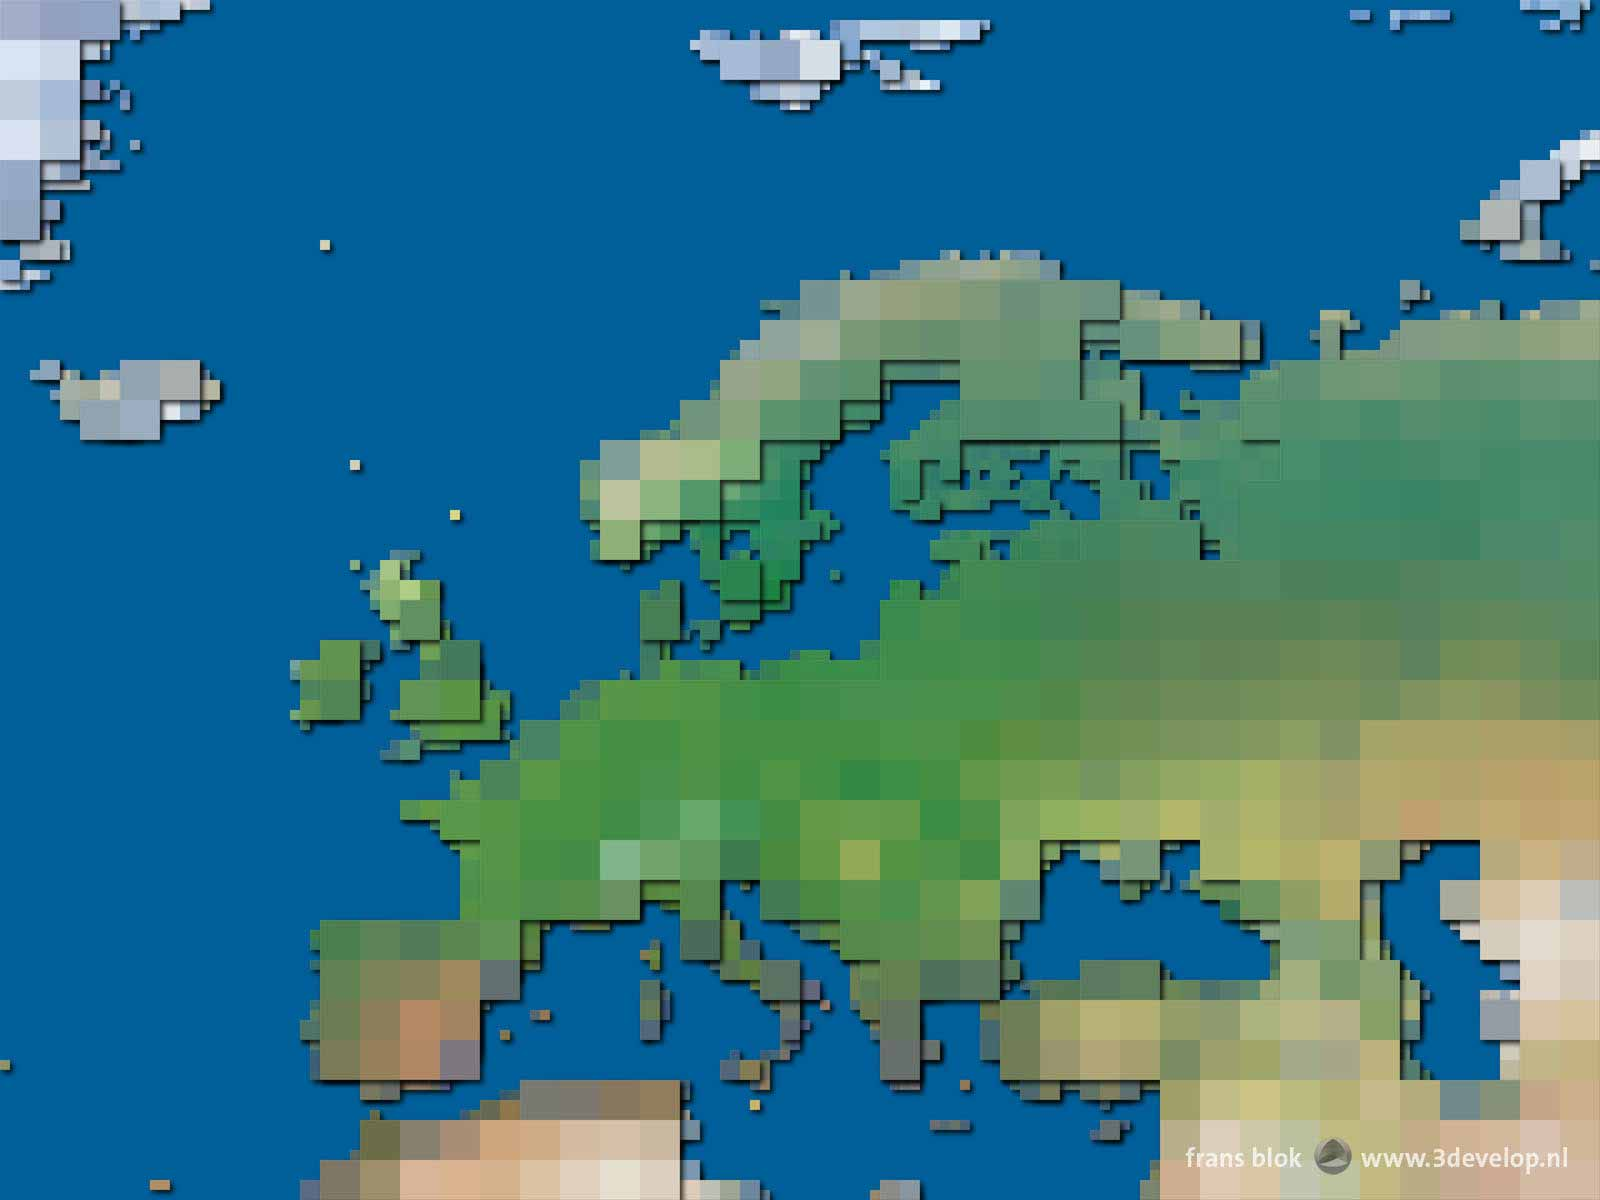 The block map of Europe, a colorful, abstract and yet realistic map of the continent and the surrounding seas